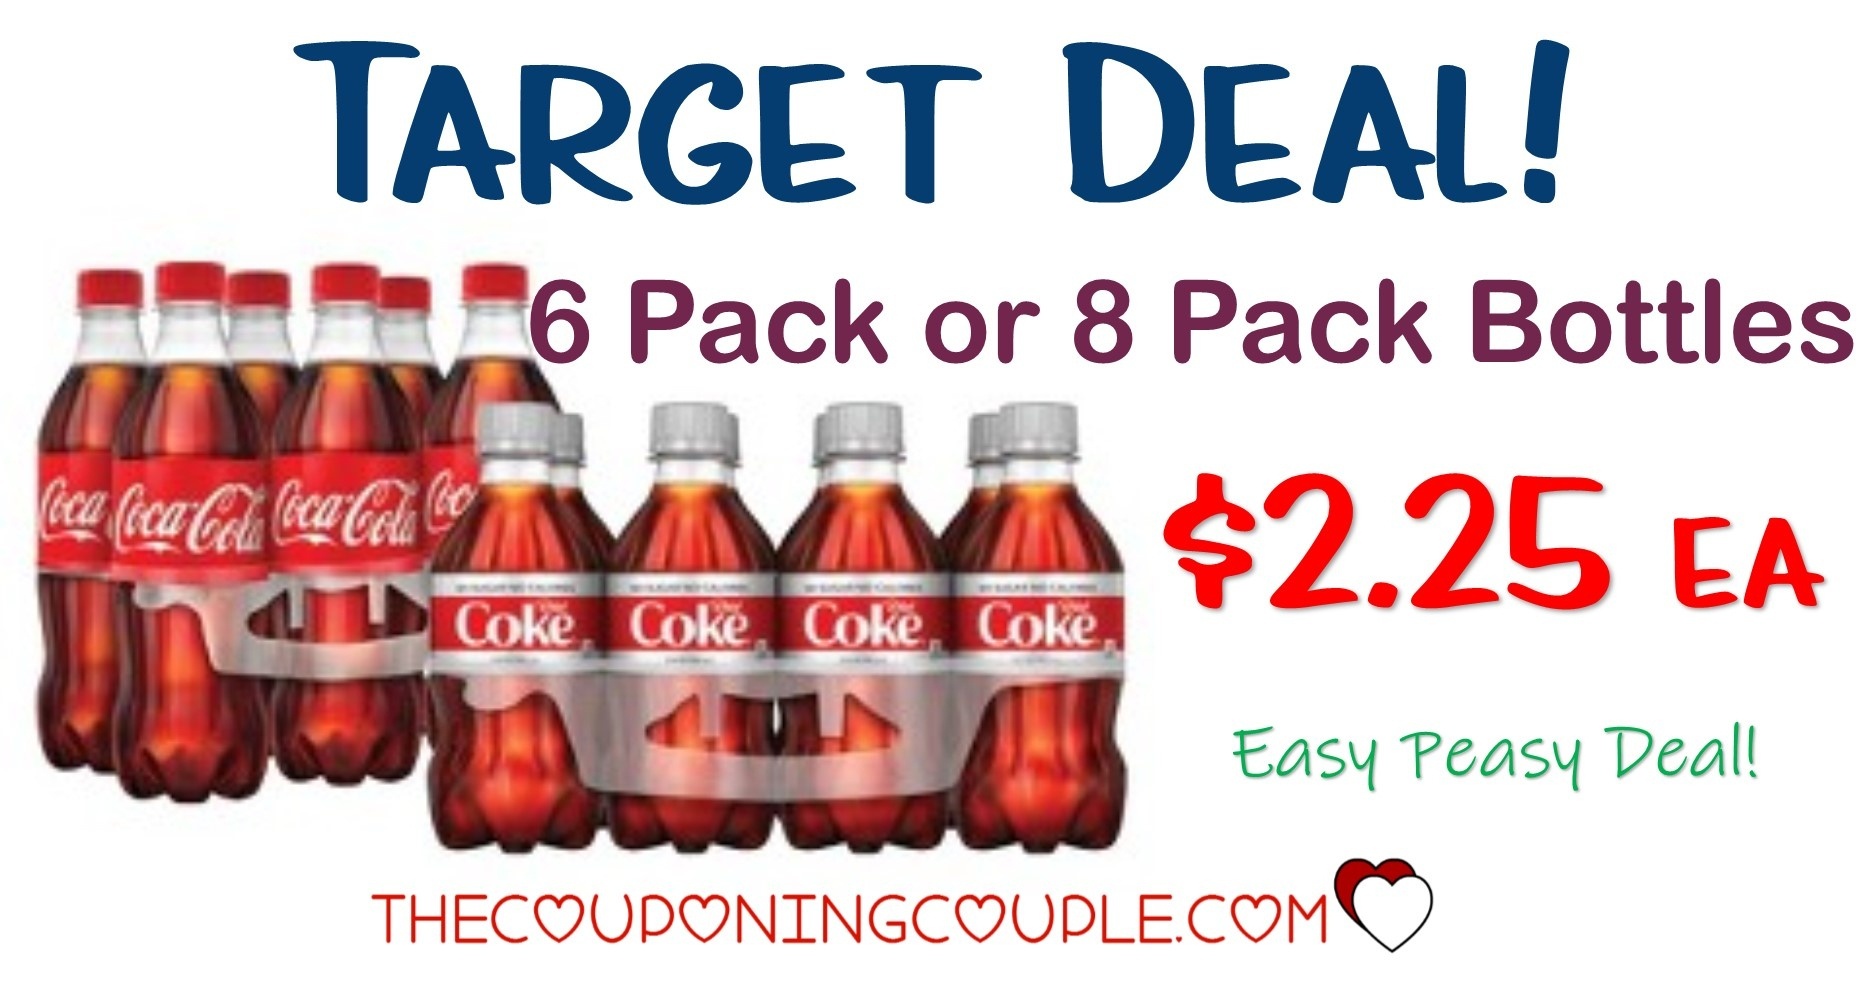 Stock Up Deal On Coca Cola At Target! $2.25 6Pk Or 8Pk Bottles! - Free Printable Coupons For Coca Cola Products